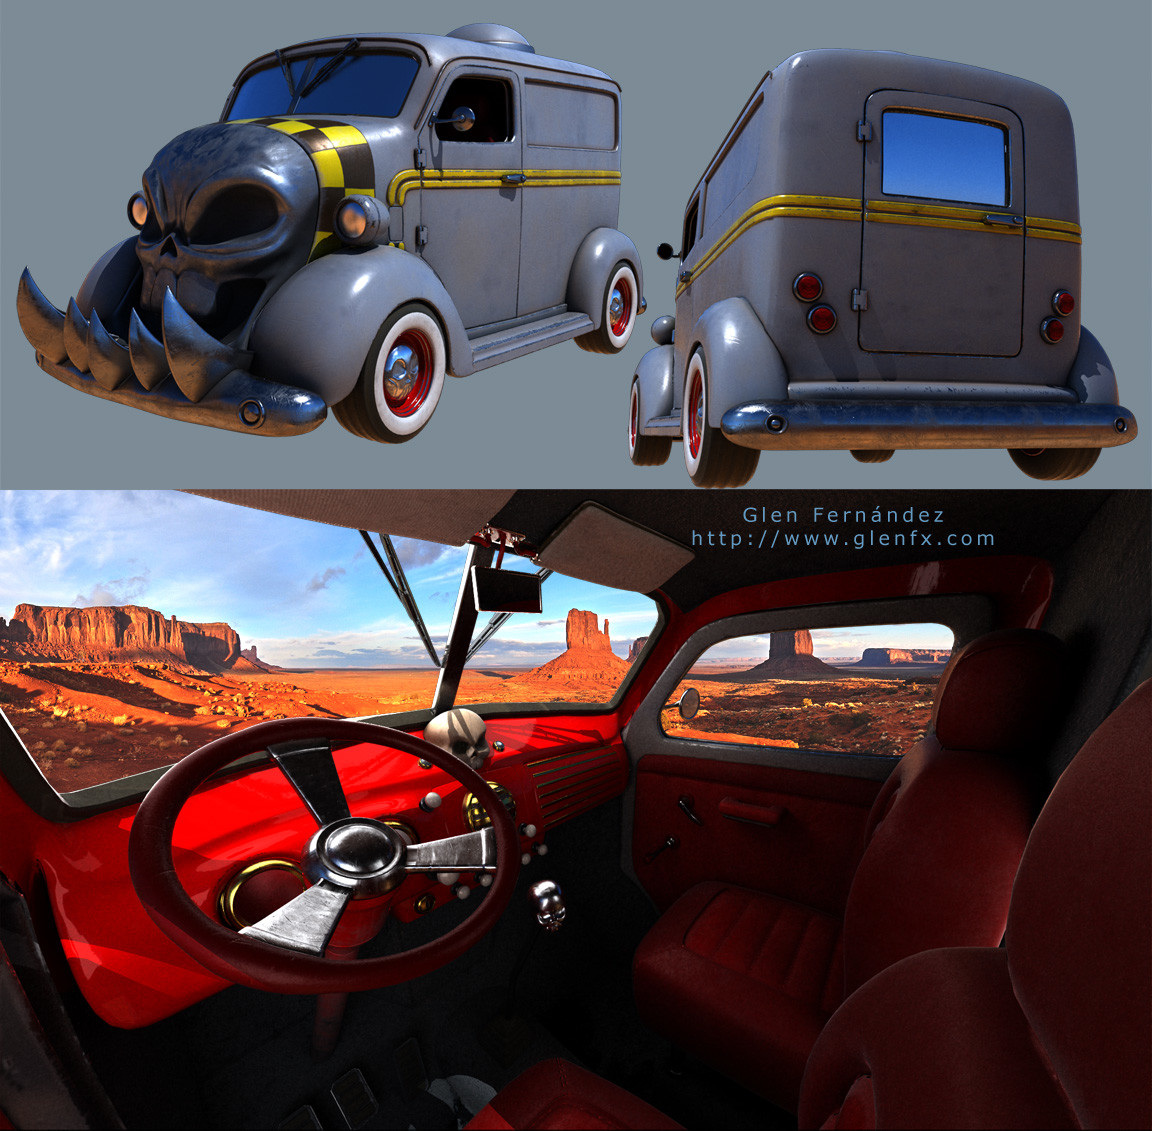 Glen fernandez sardi van model preview 02 glenfx